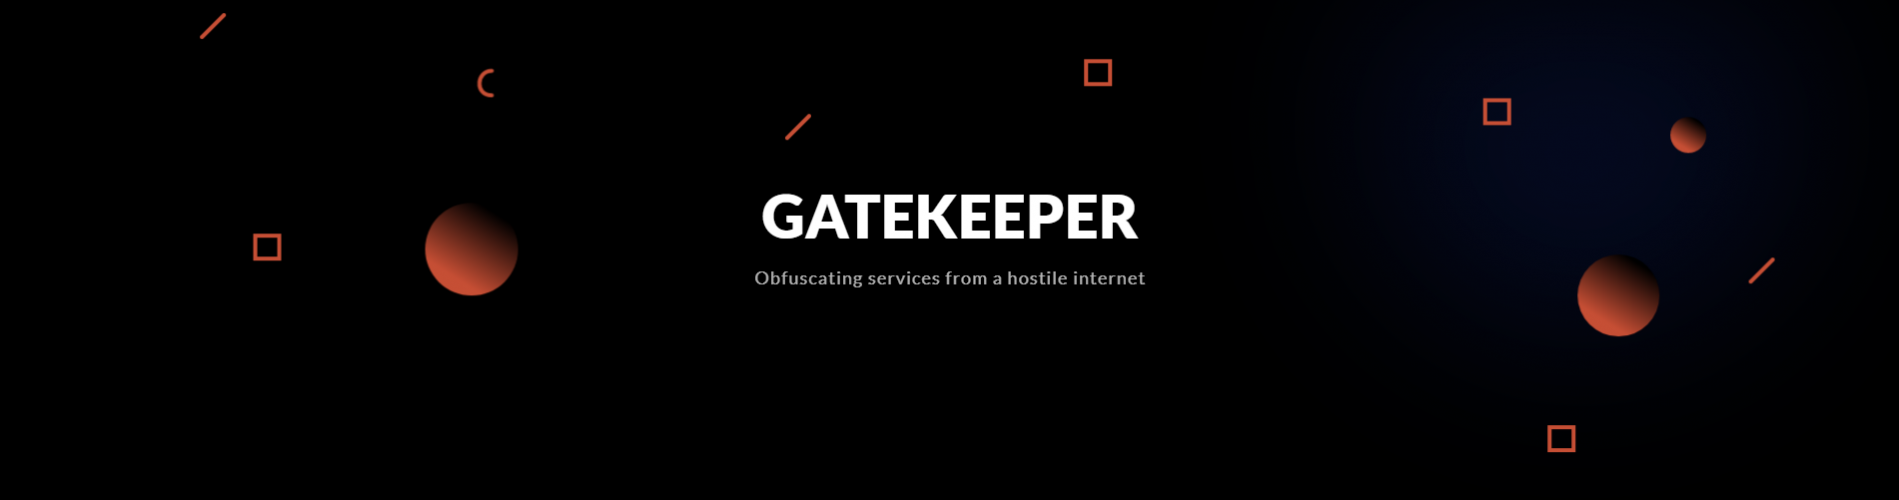 Want to learn more about Gatekeeper ?